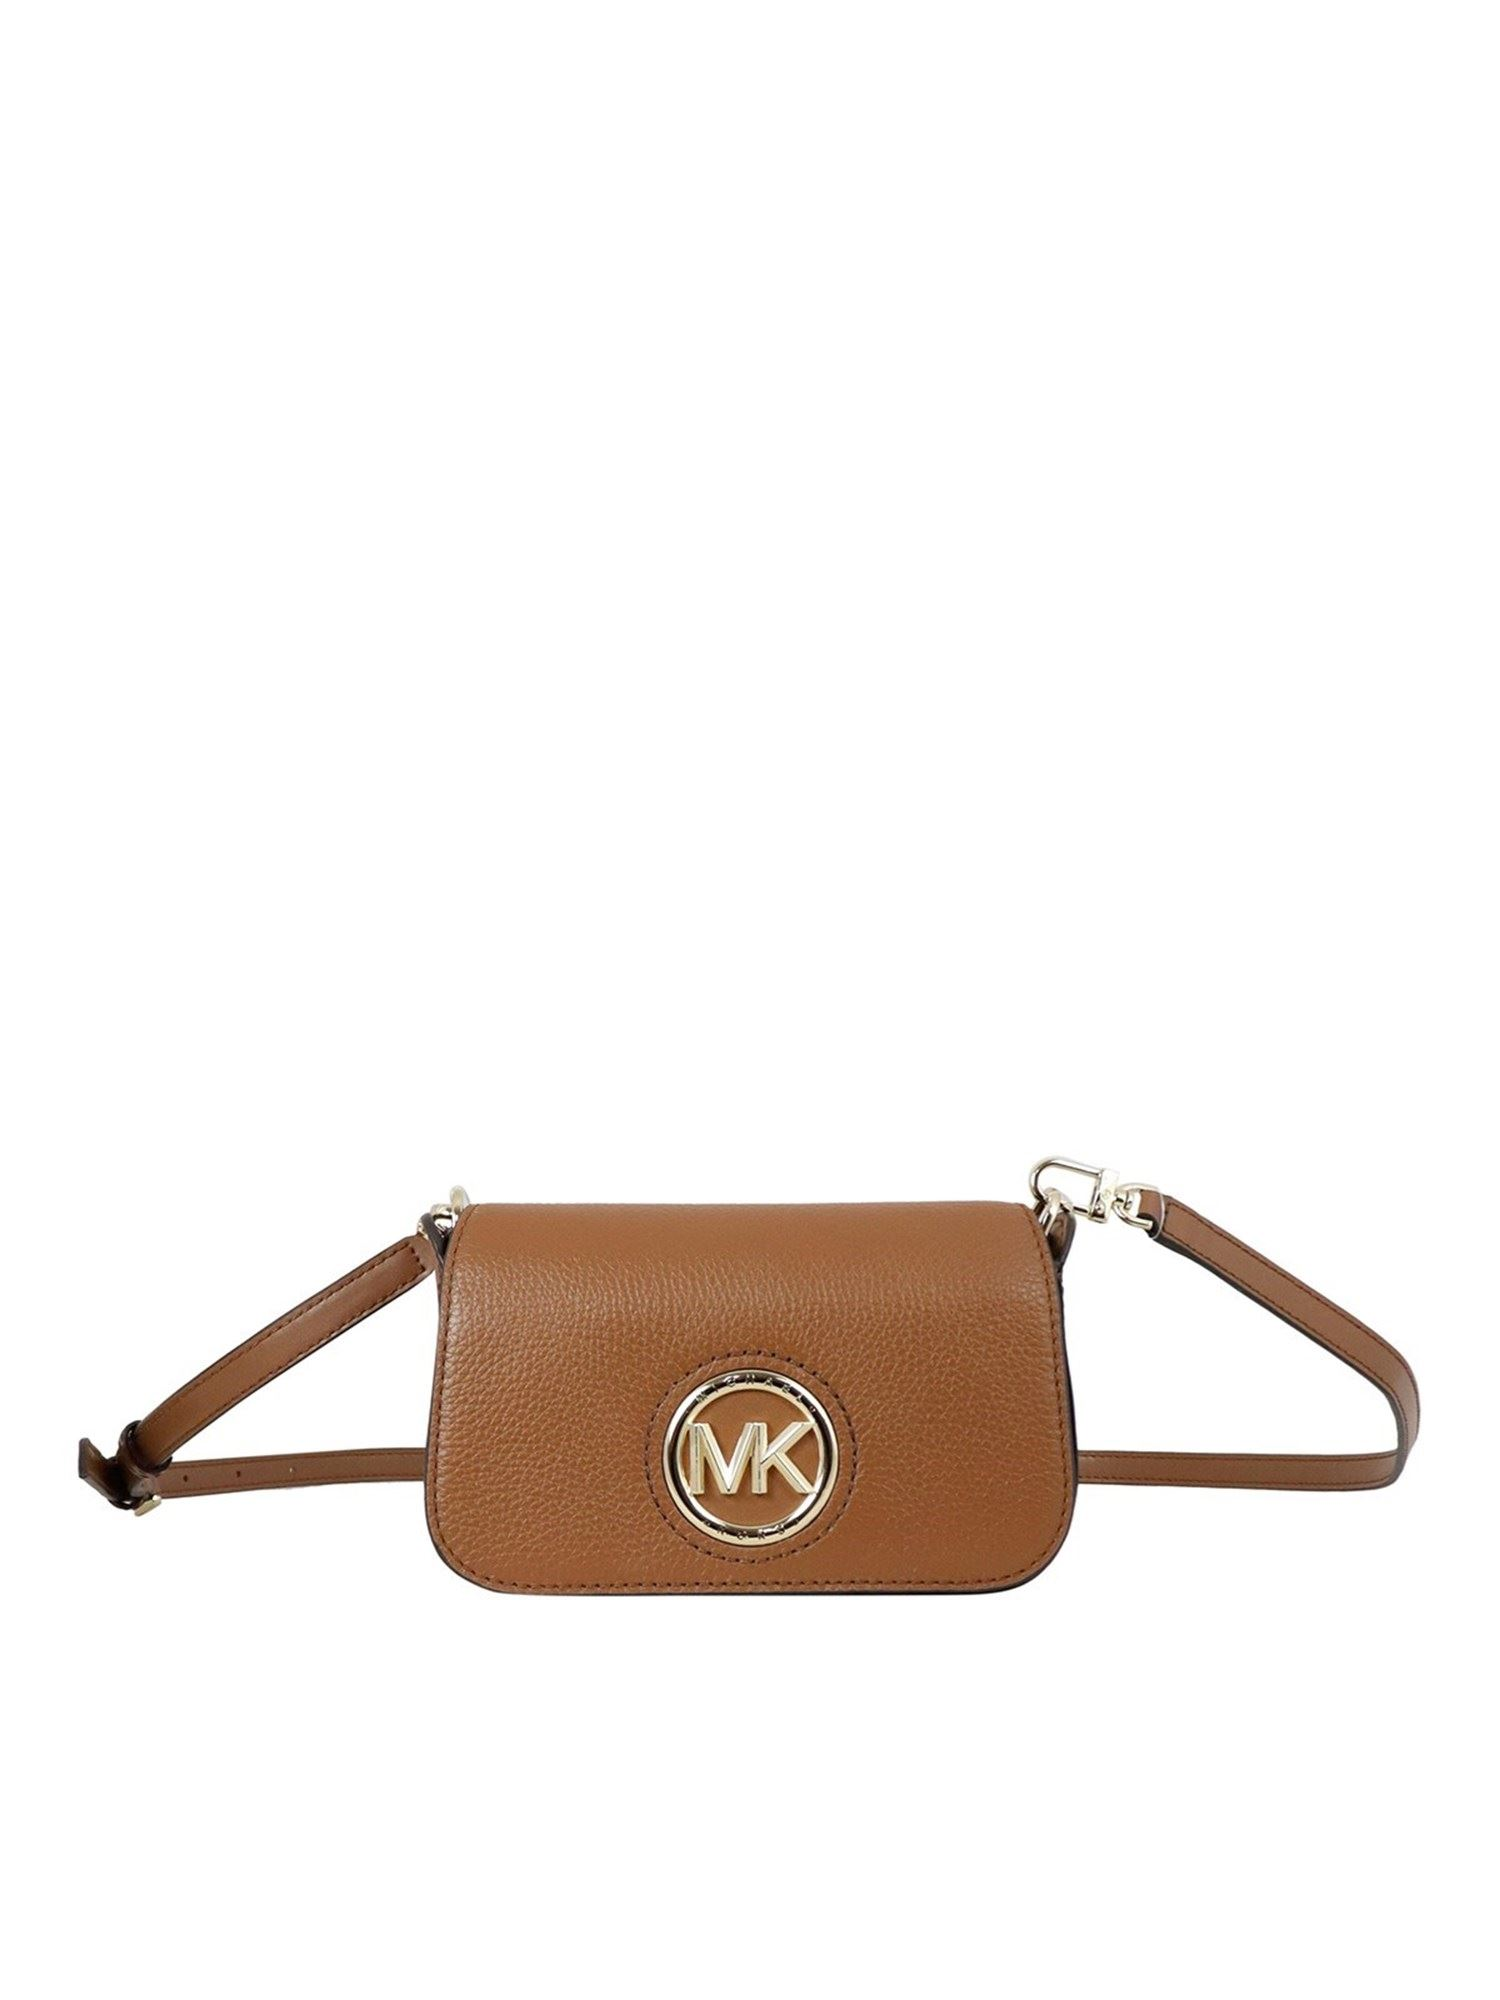 Michael Kors SAMIRA CROSS BODY BAG IN BRONW